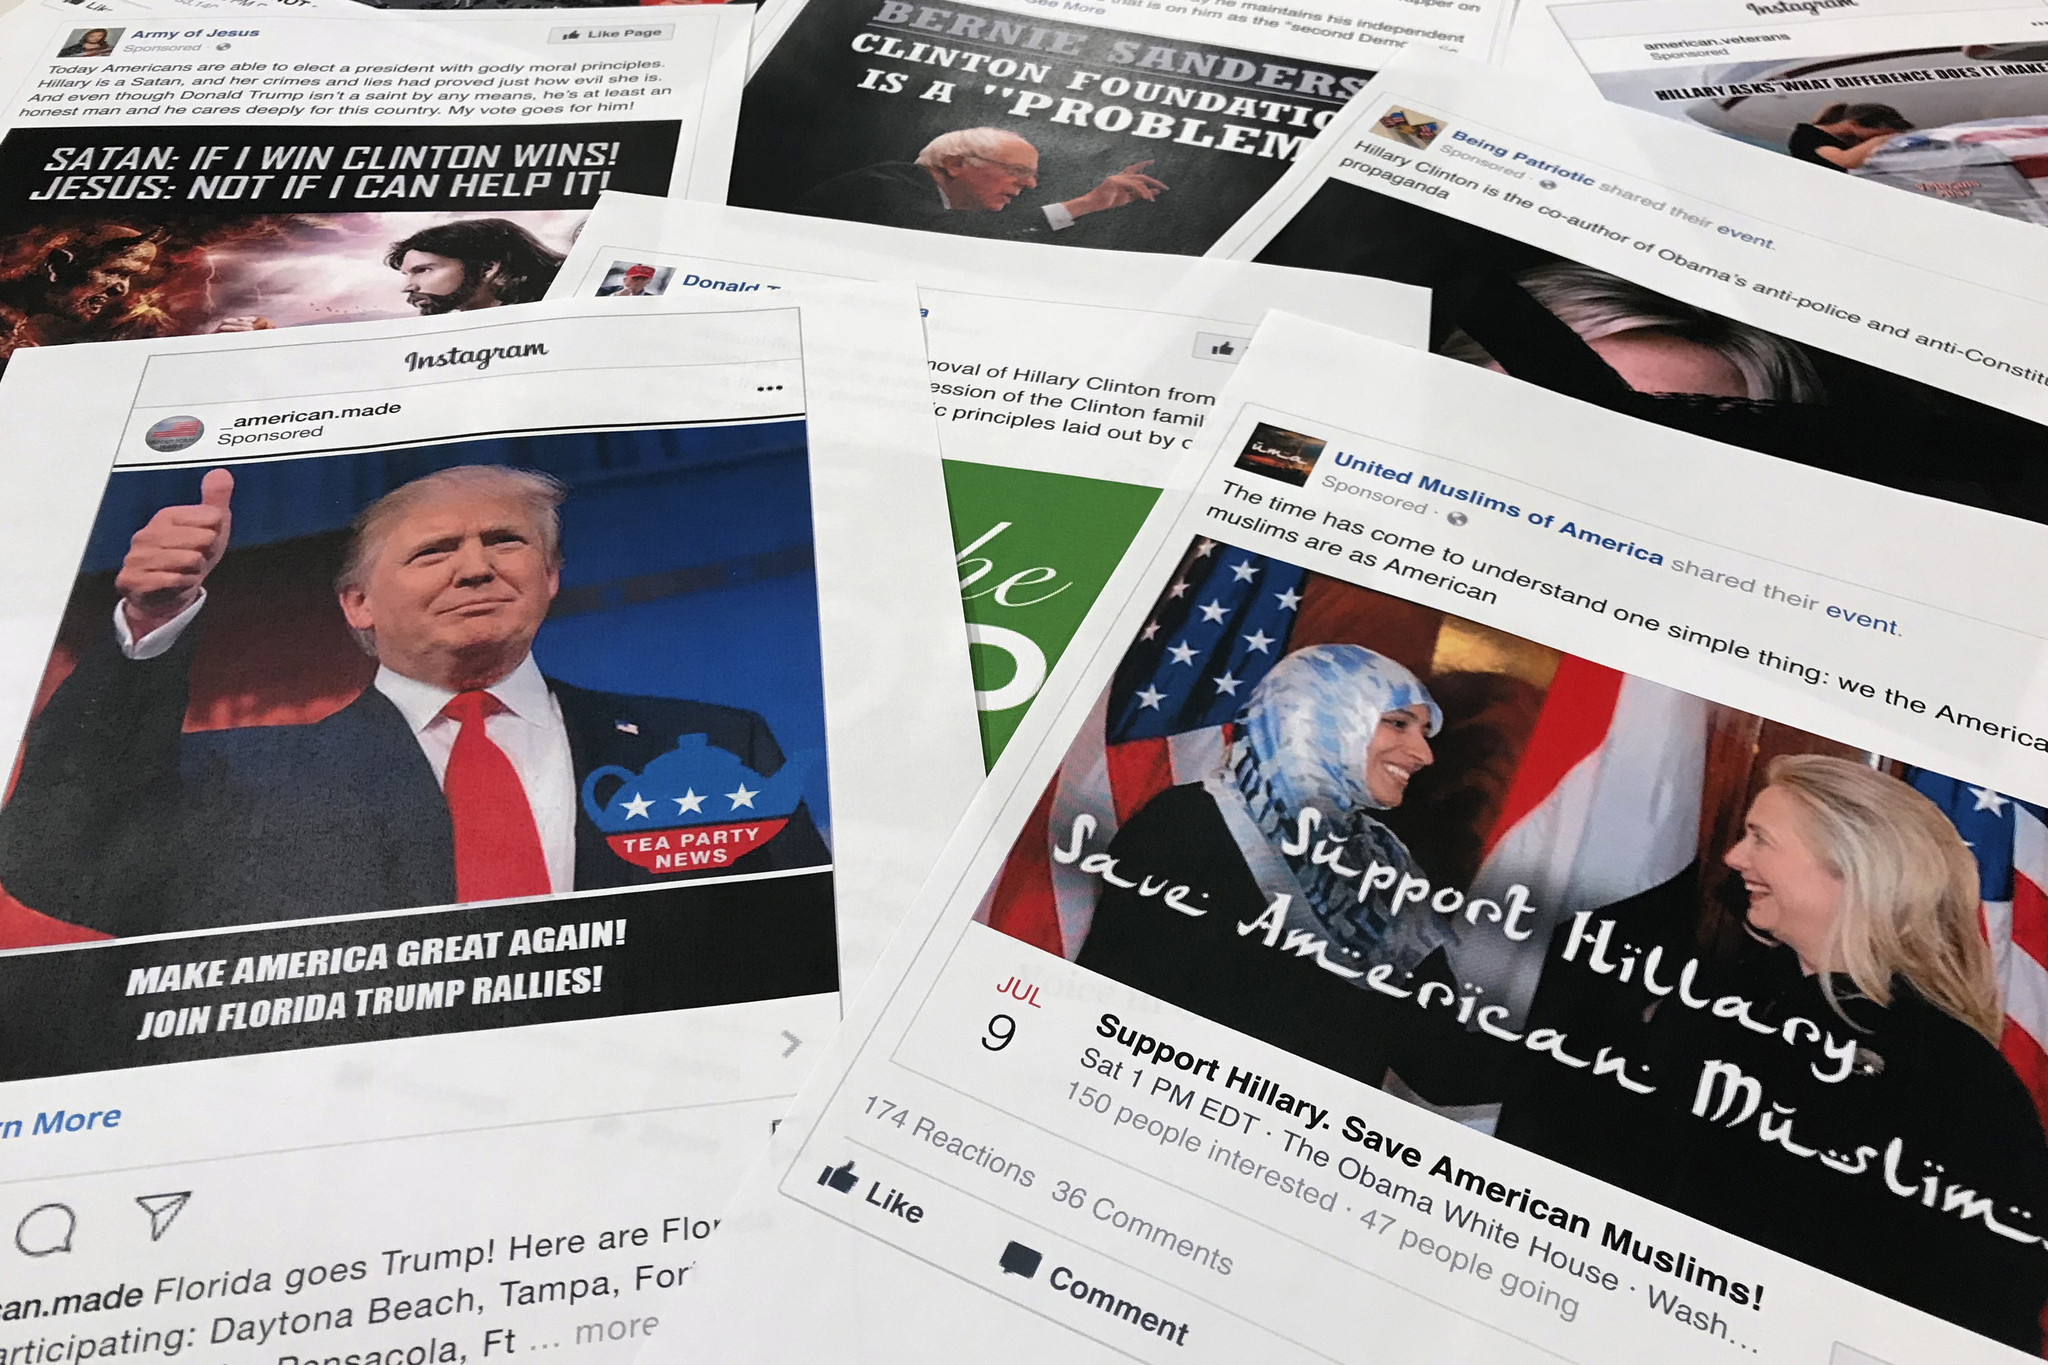 Senate report: Russia social media influence efforts ongoing